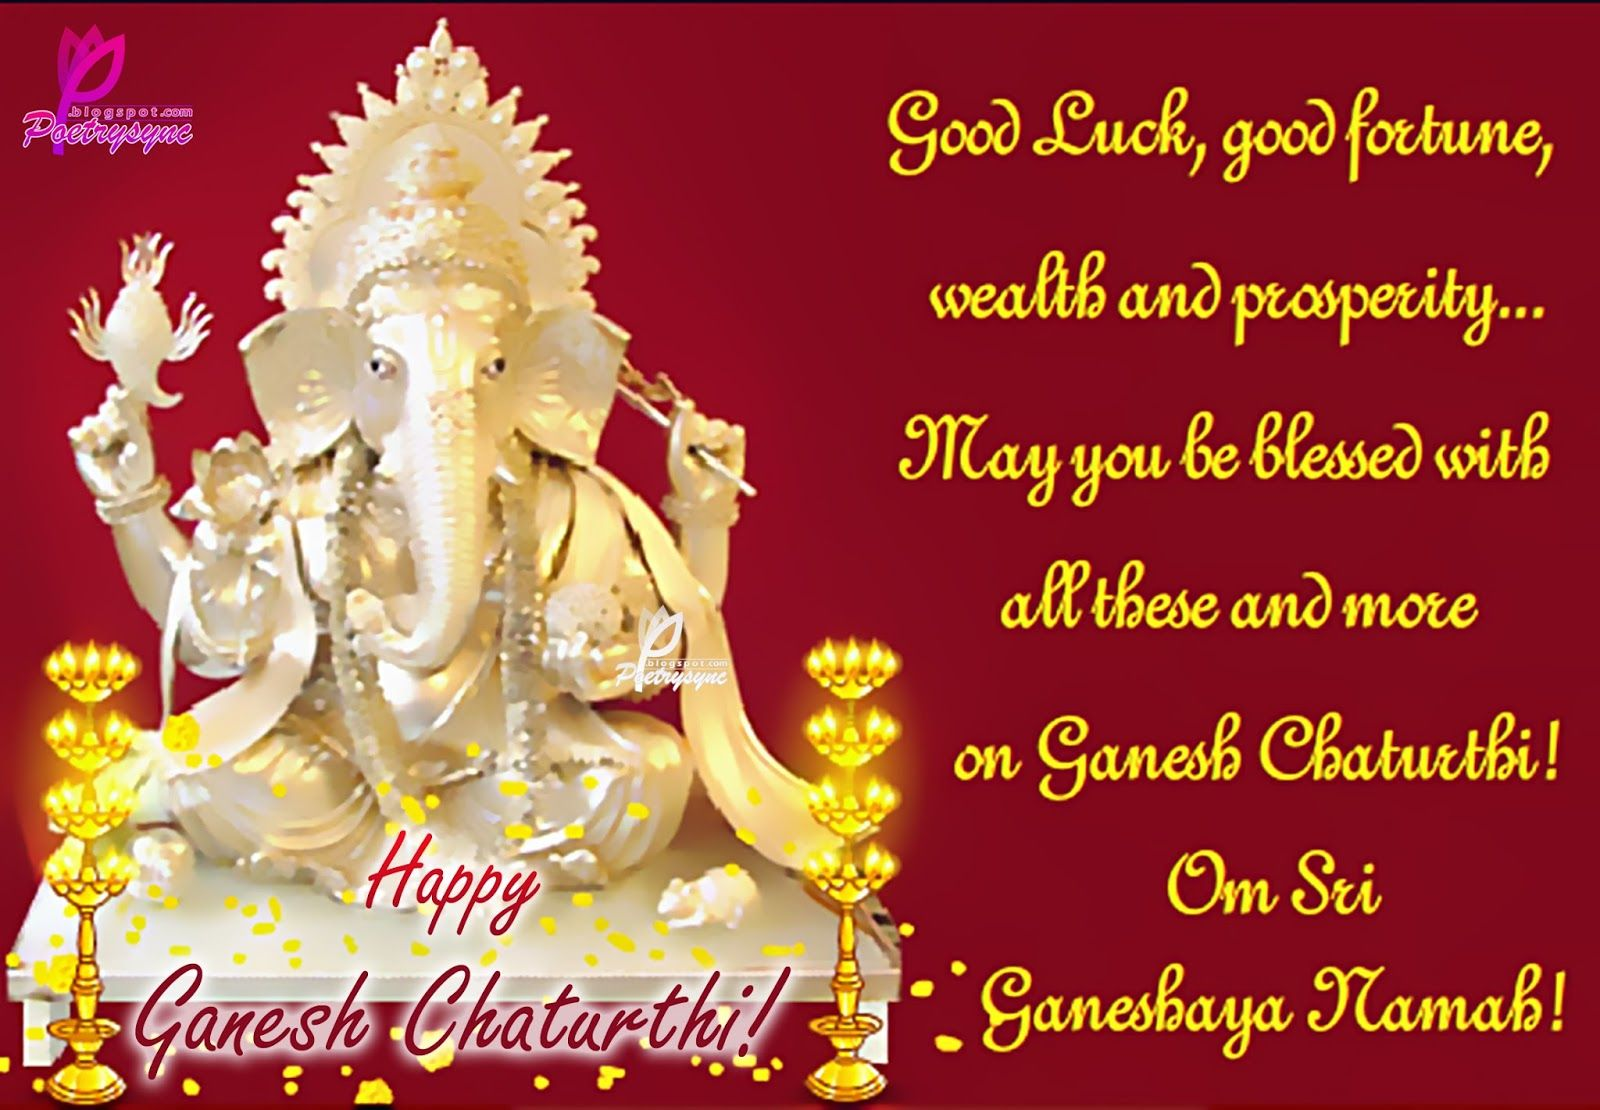 Ganesh chaturthi advance wishes greeting card image picture photo ganesh chaturthi advance wishes greeting card image picture photo m4hsunfo